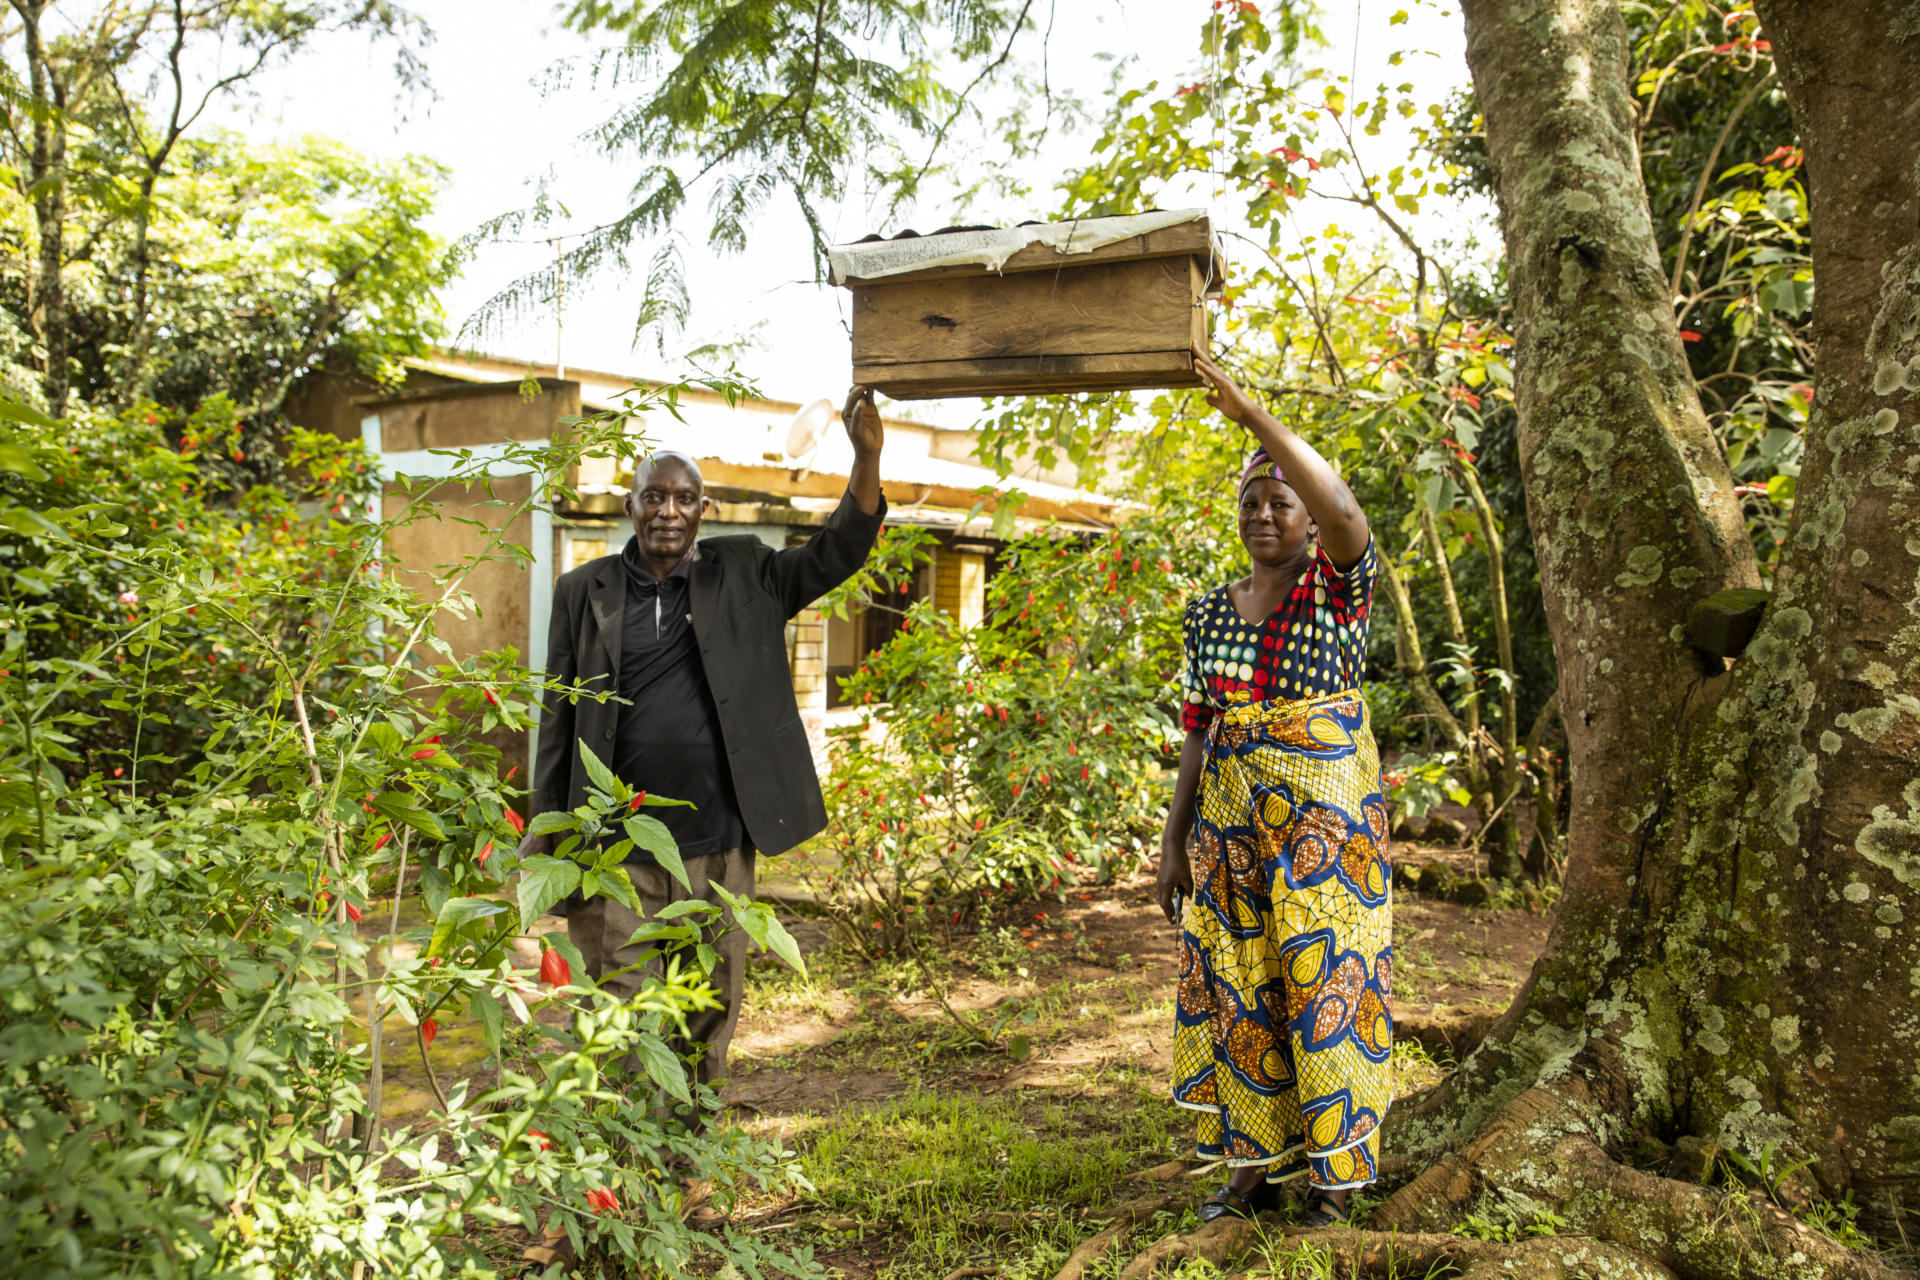 Tanzania: One of Emil and Lugano's beehives which provides income from honey.